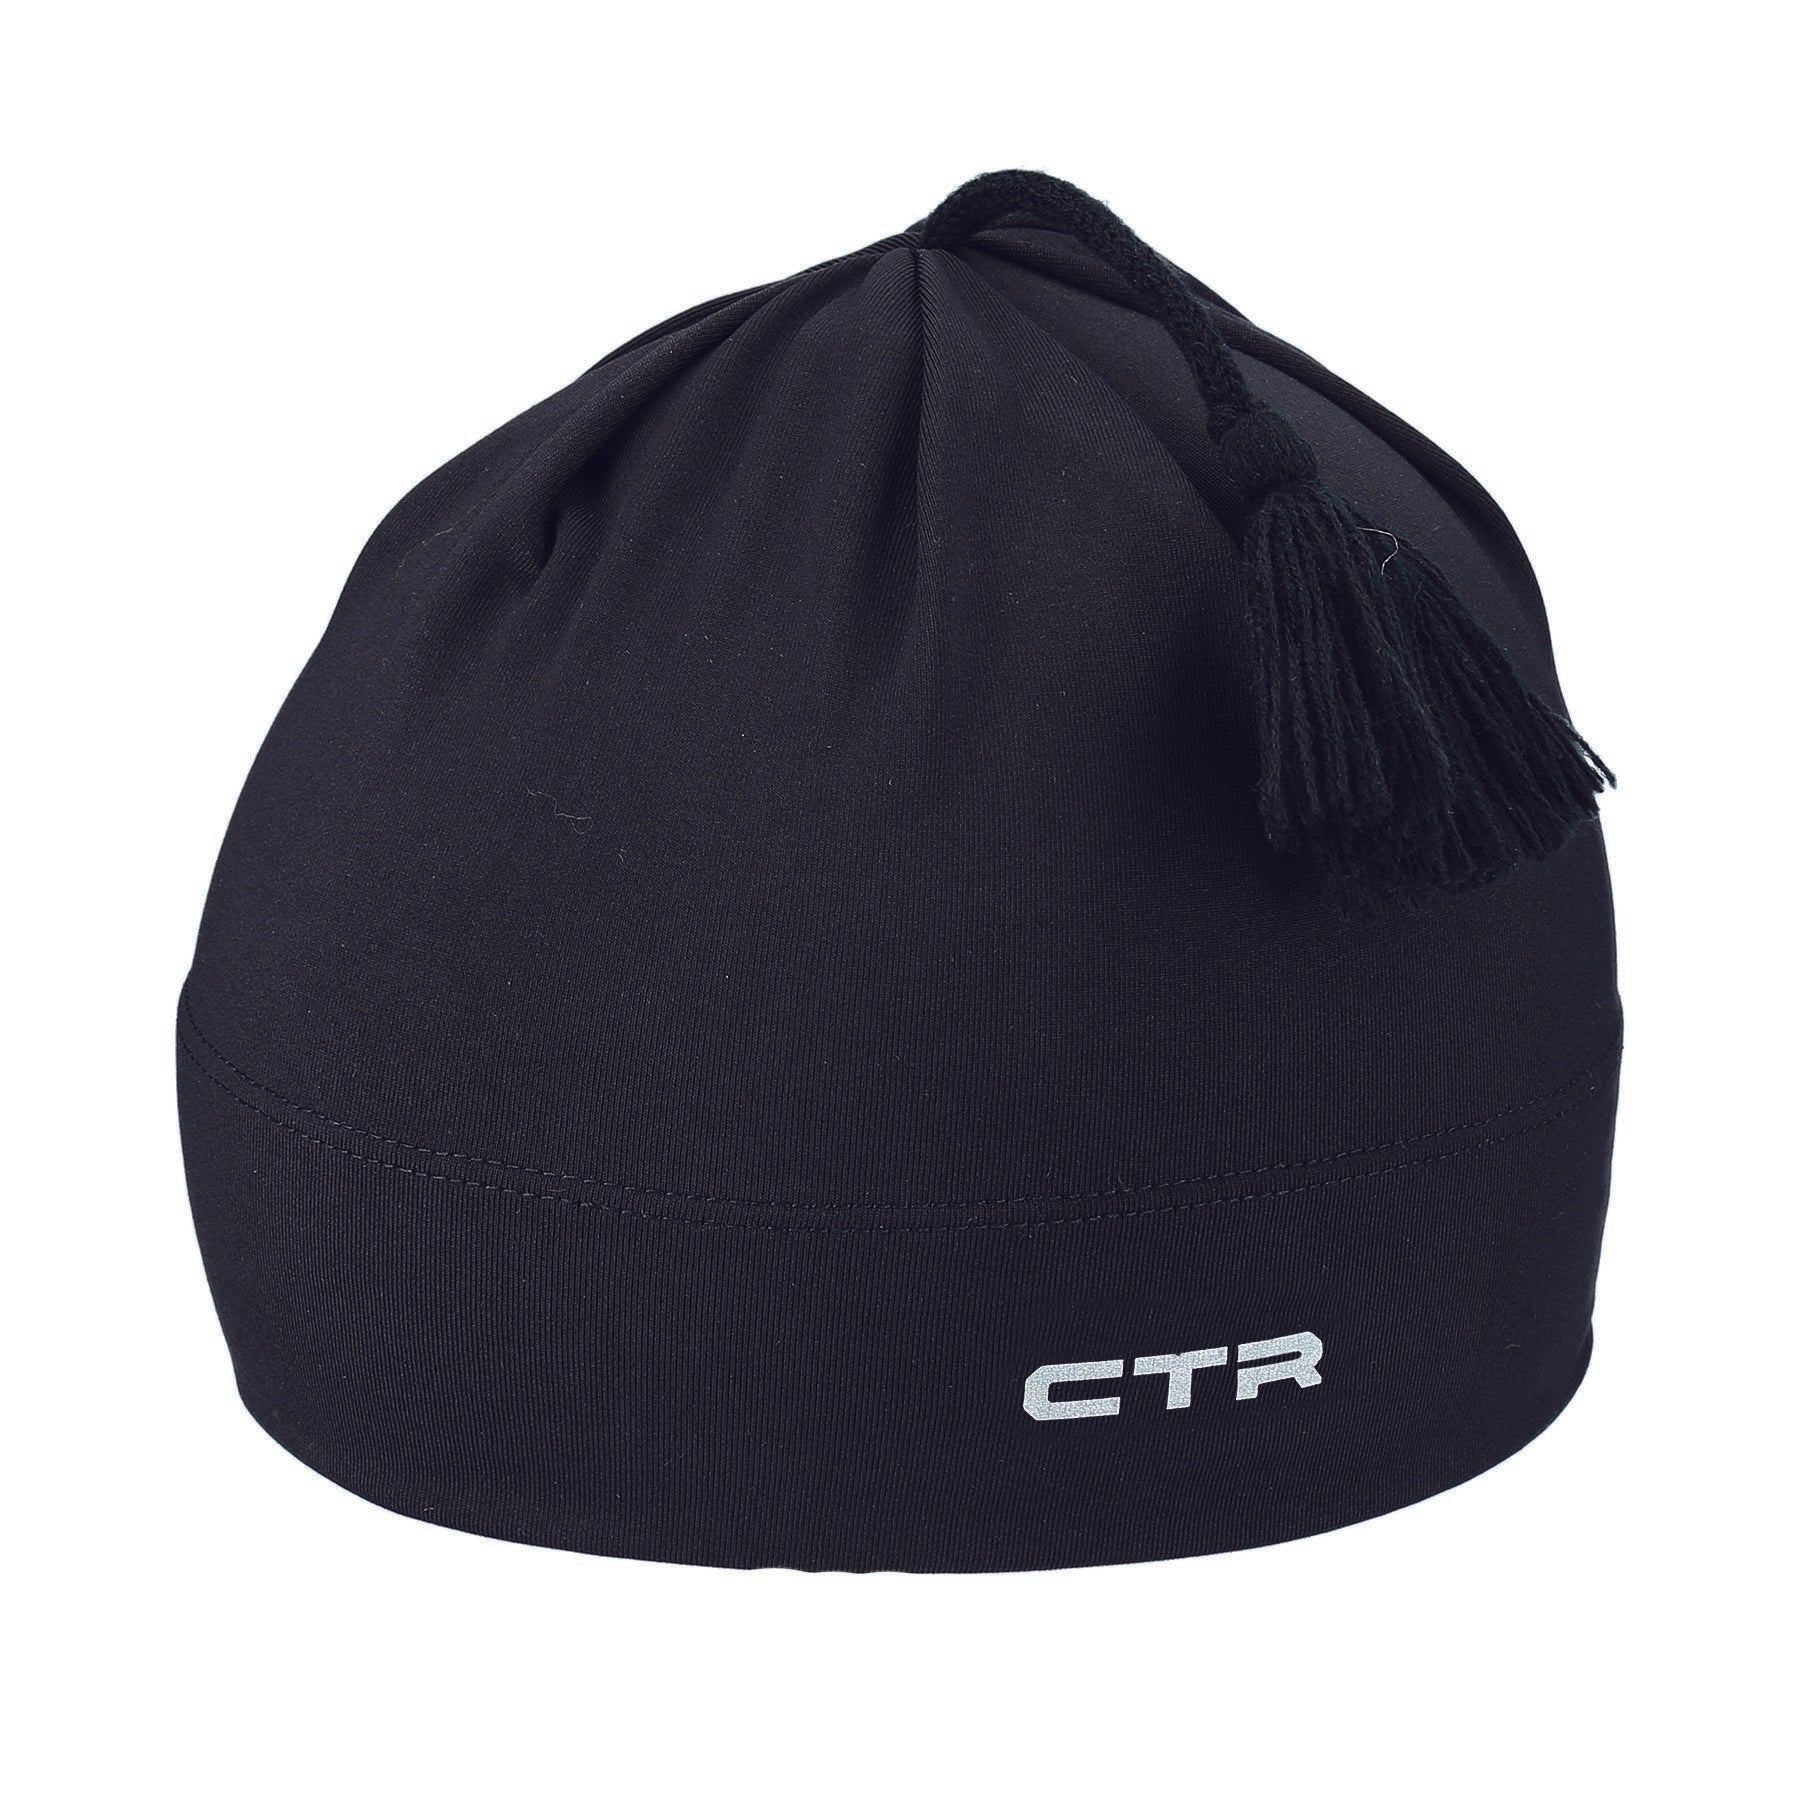 4697f5c6c35 CTR by Chaos – Chaos Headwear   CTR